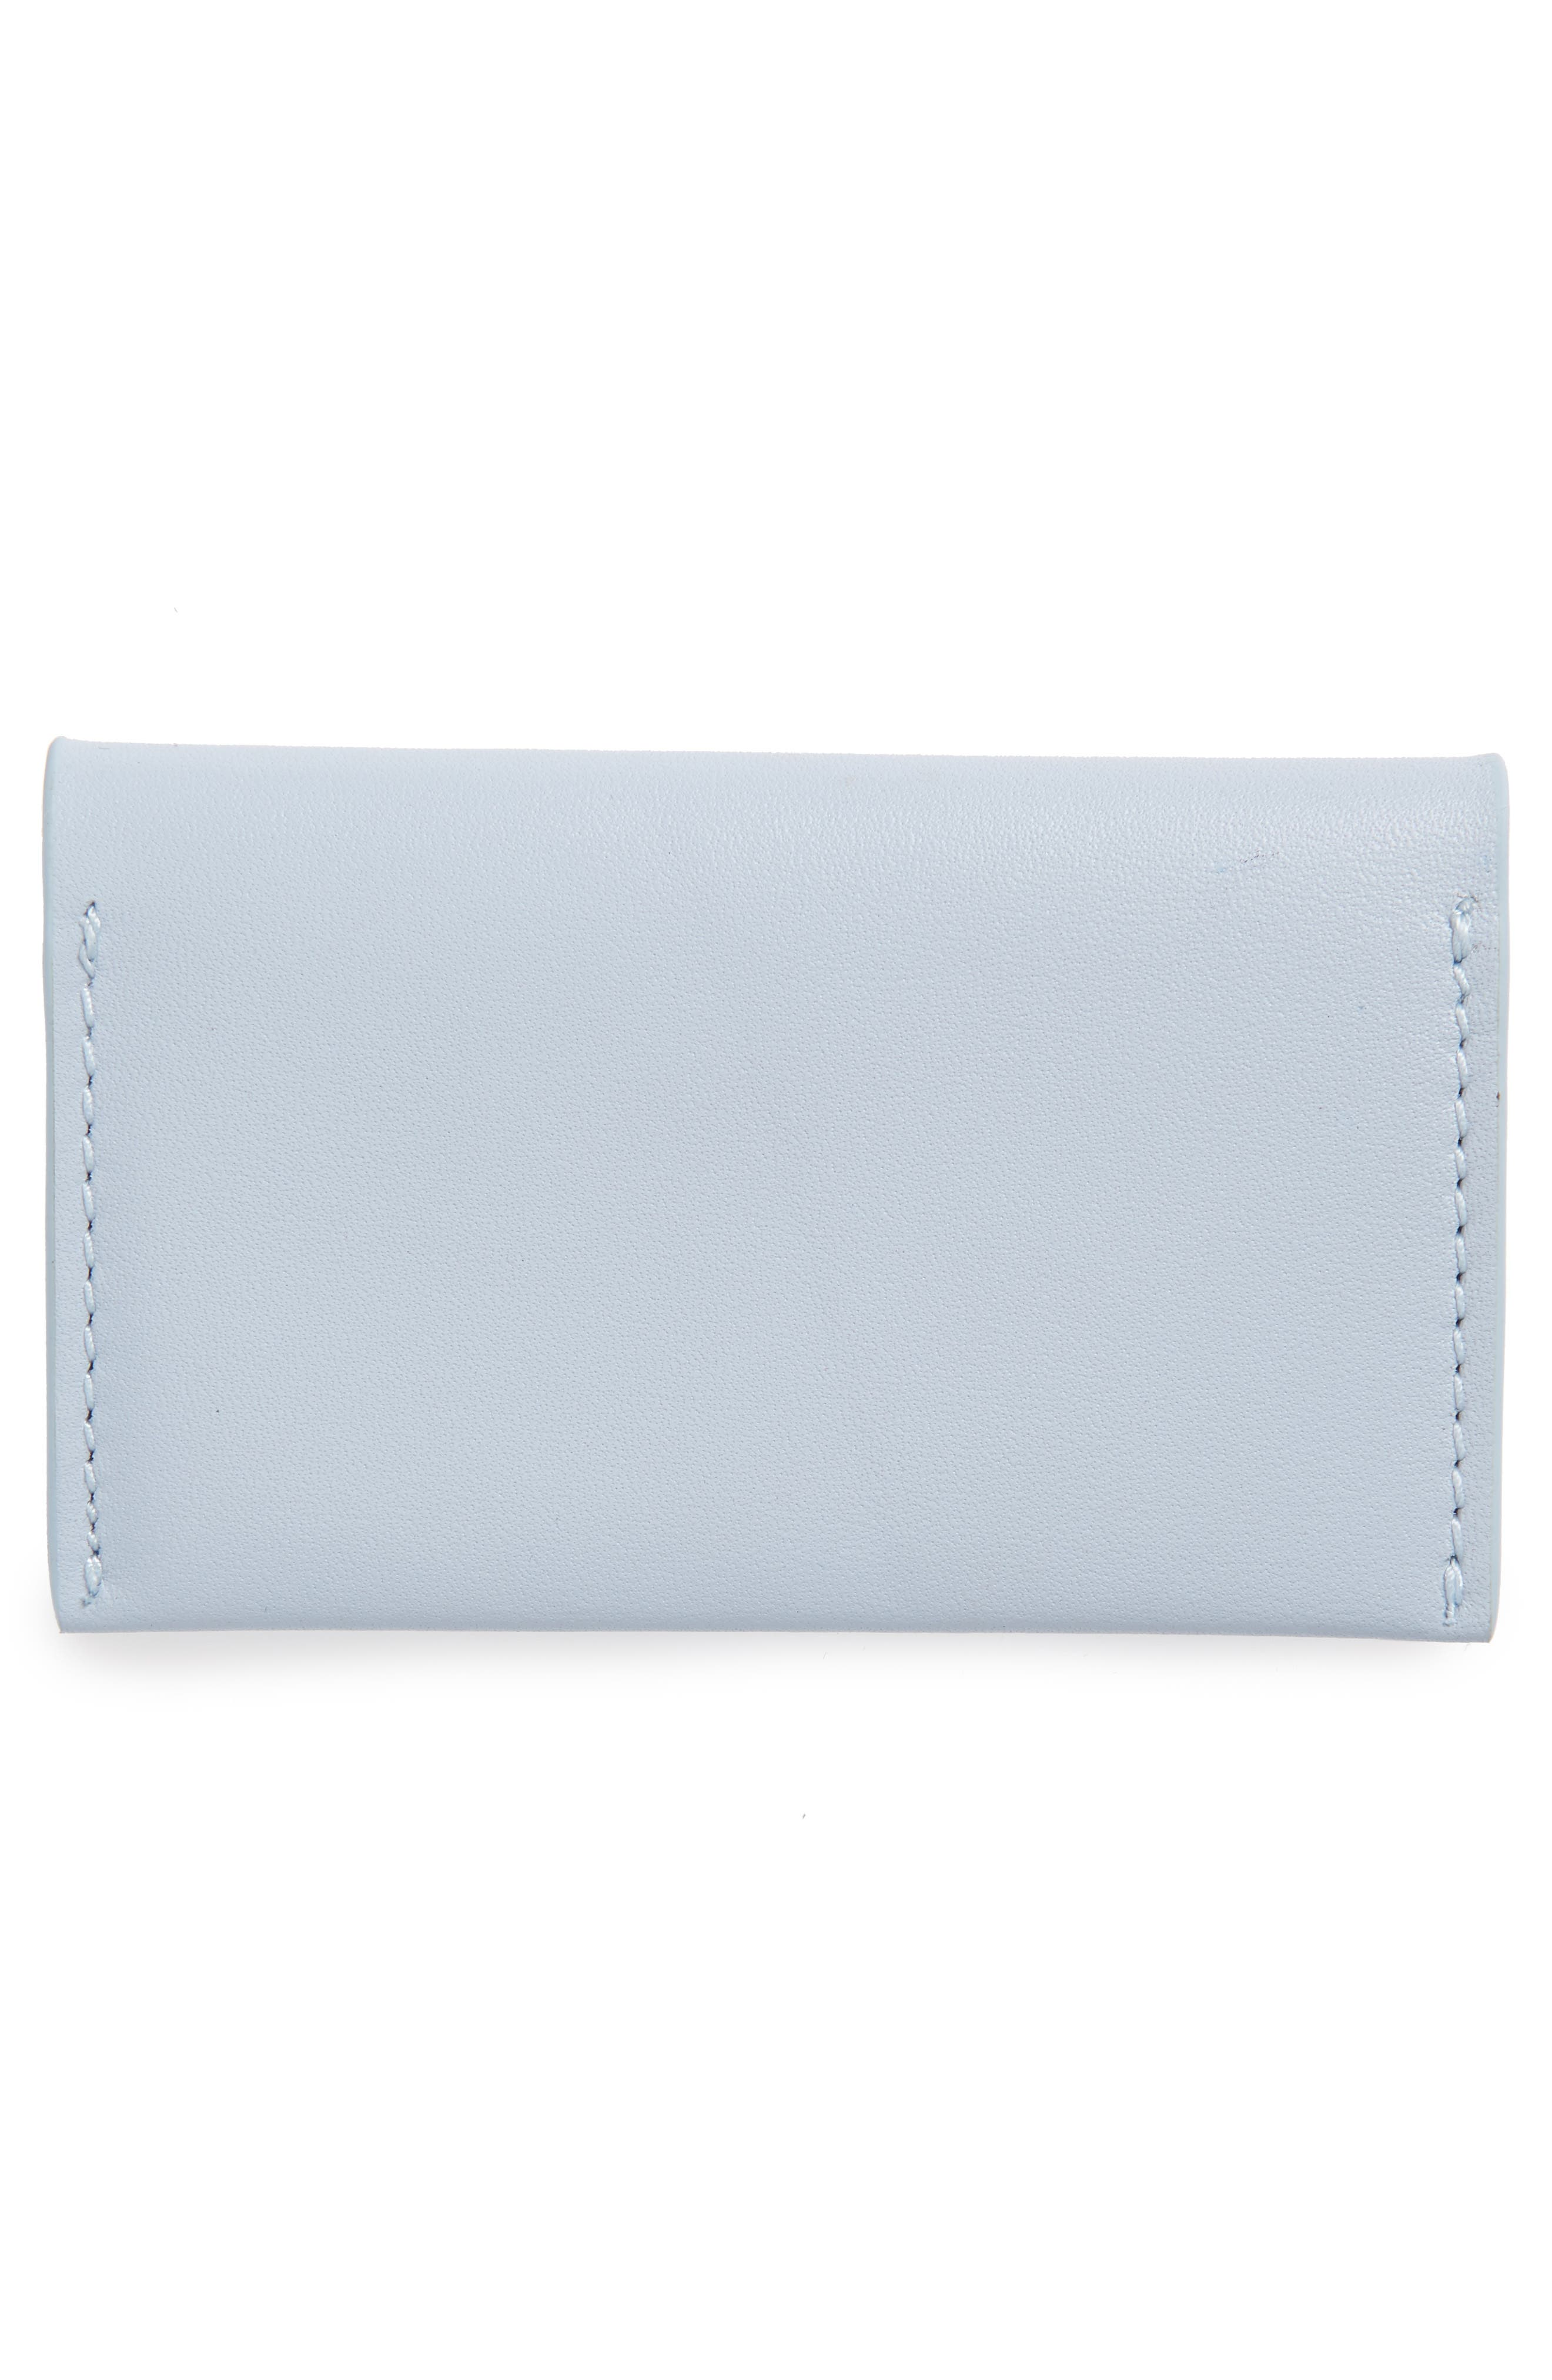 Leather Card Case,                             Alternate thumbnail 3, color,                             Powder Blue